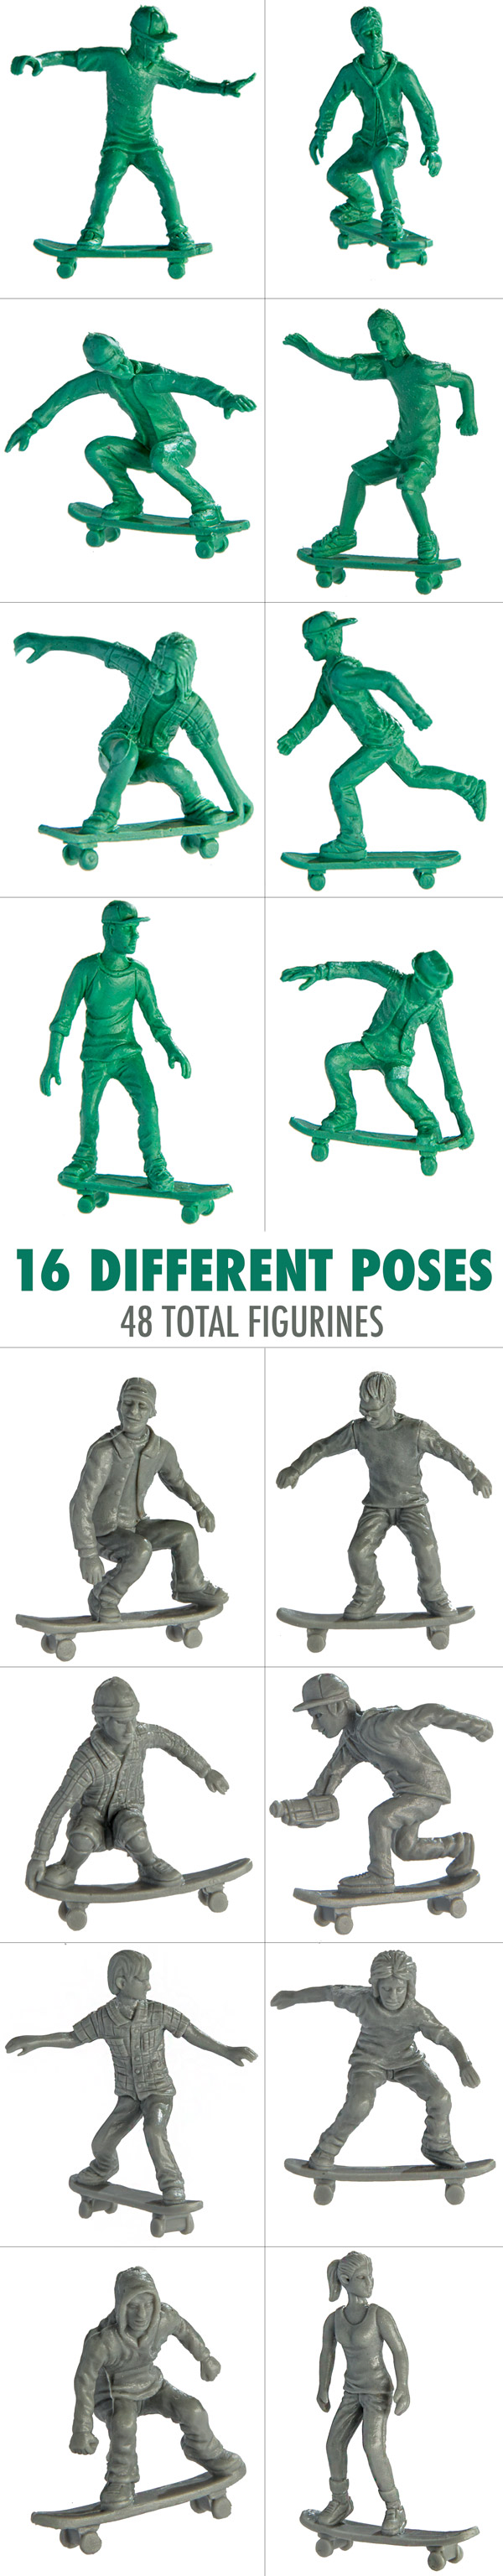 Skateboarder Toyboarders have 16 unique poses.